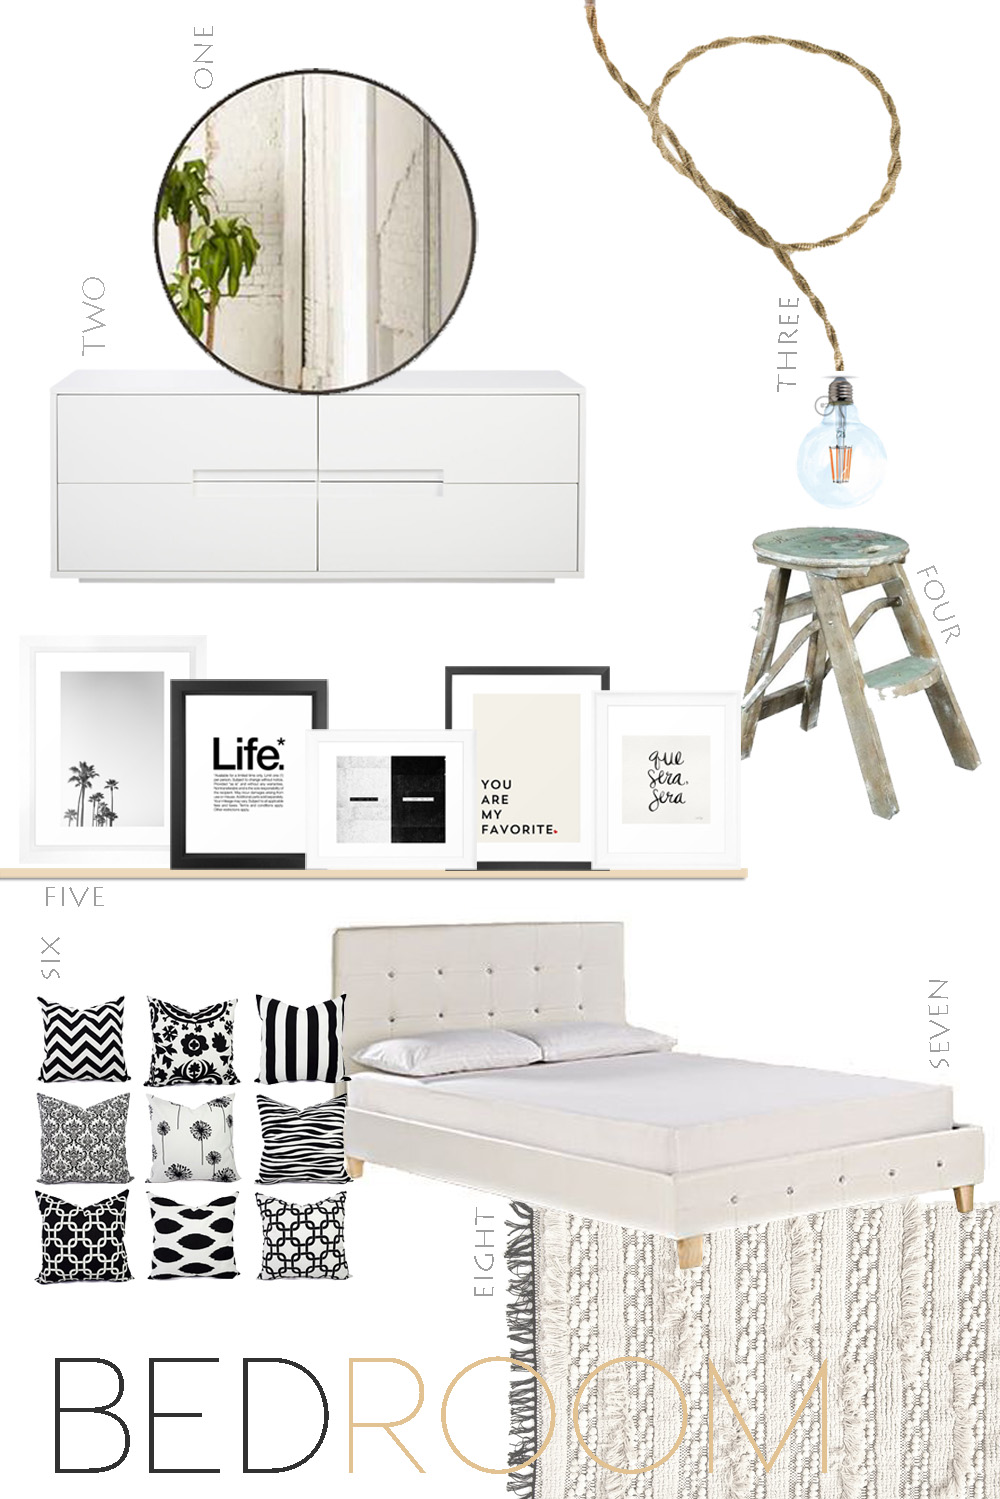 bedroom shop online, bedroom moodboard, bedroom restyling, bedroom redesign, home shopping online